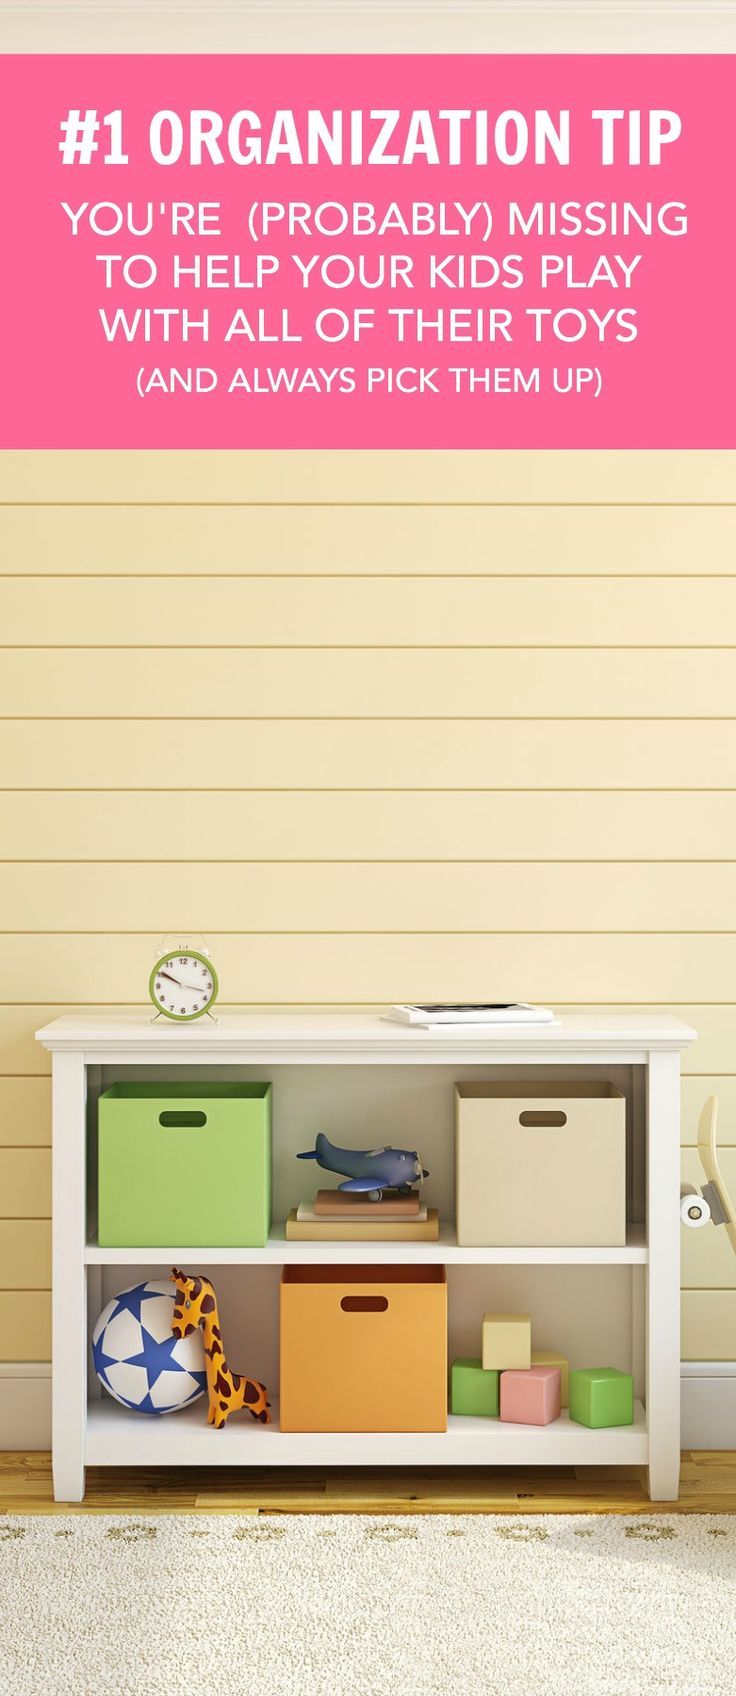 Choosing the paint colour for any direction room angela bunt - The Most Important Organization Tip For Families You May Not Be Doing